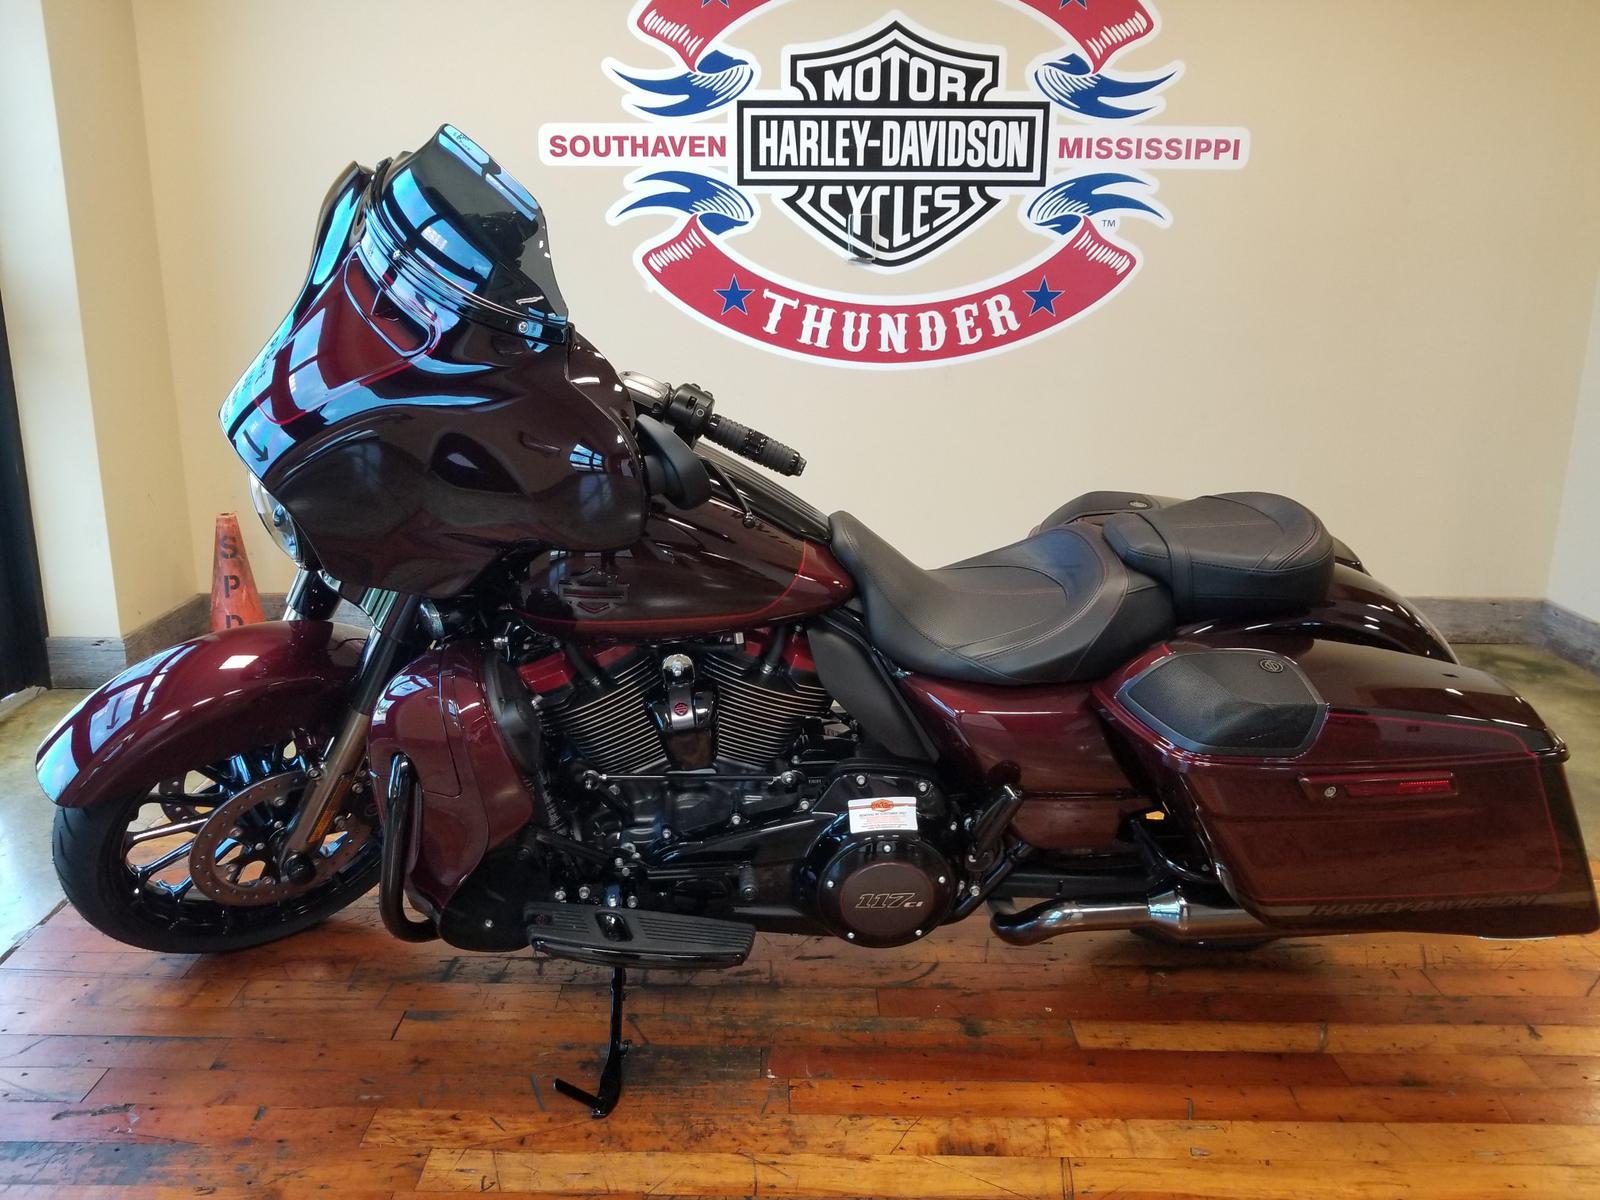 f654c7b82a2 2019 Harley-Davidson® CVO™ Street Glide® for sale in Southaven, MS ...